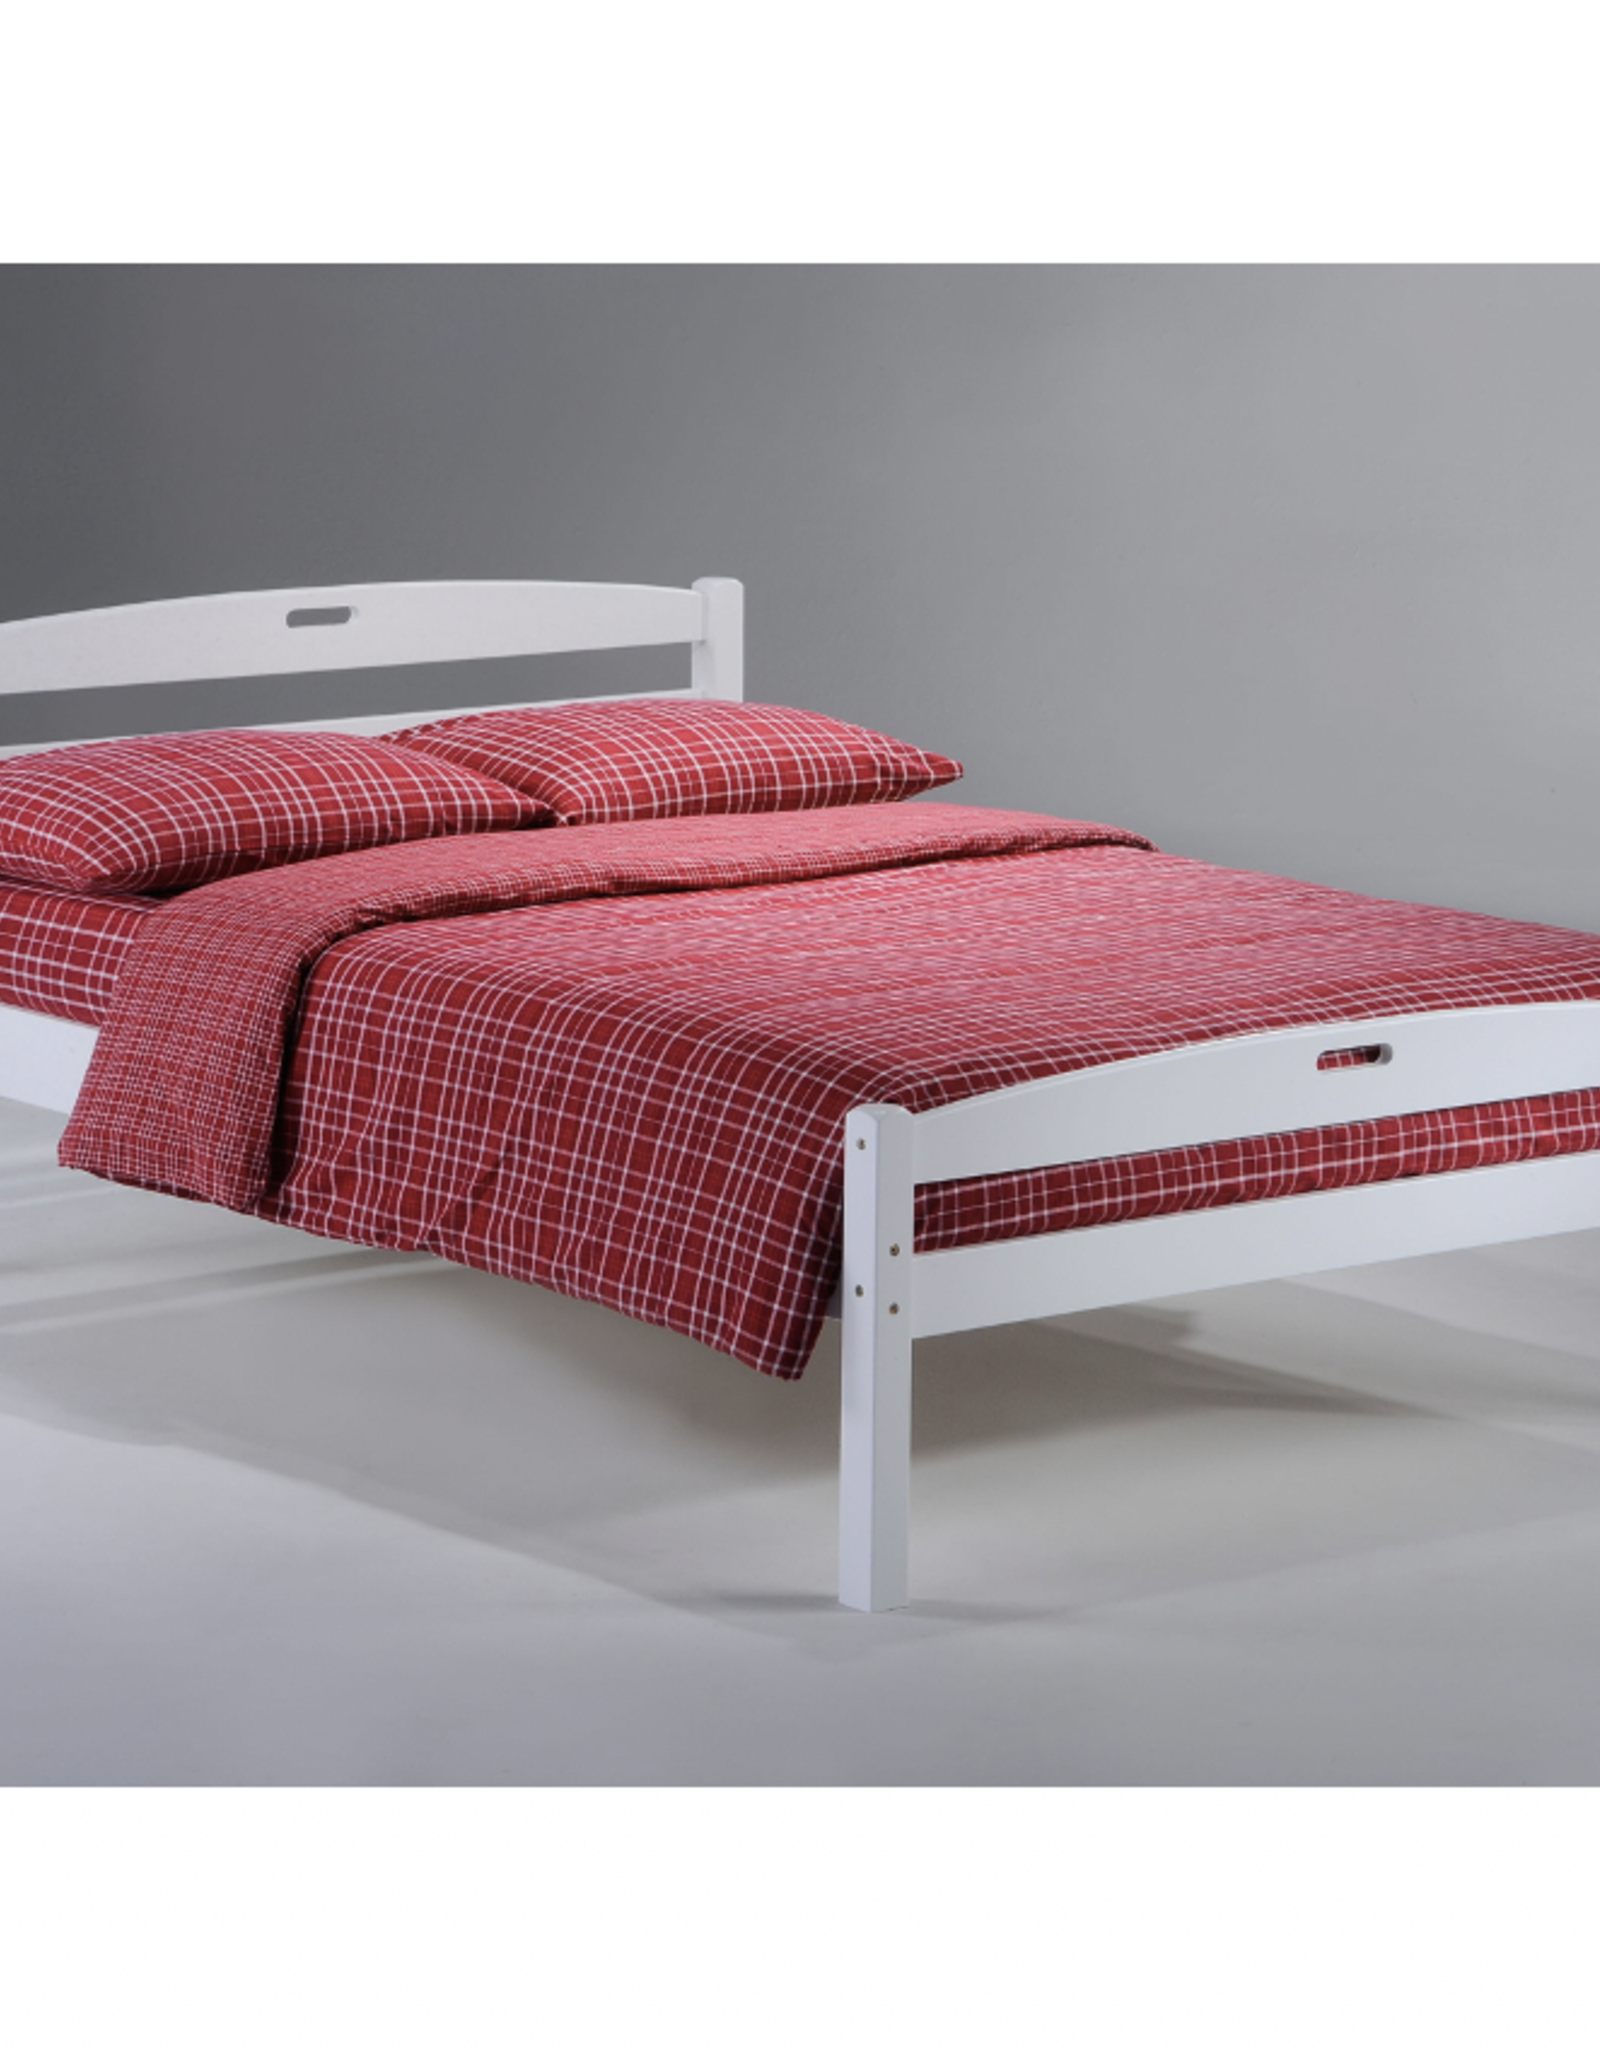 Sesame Platform Bed - Comes in Four Colors